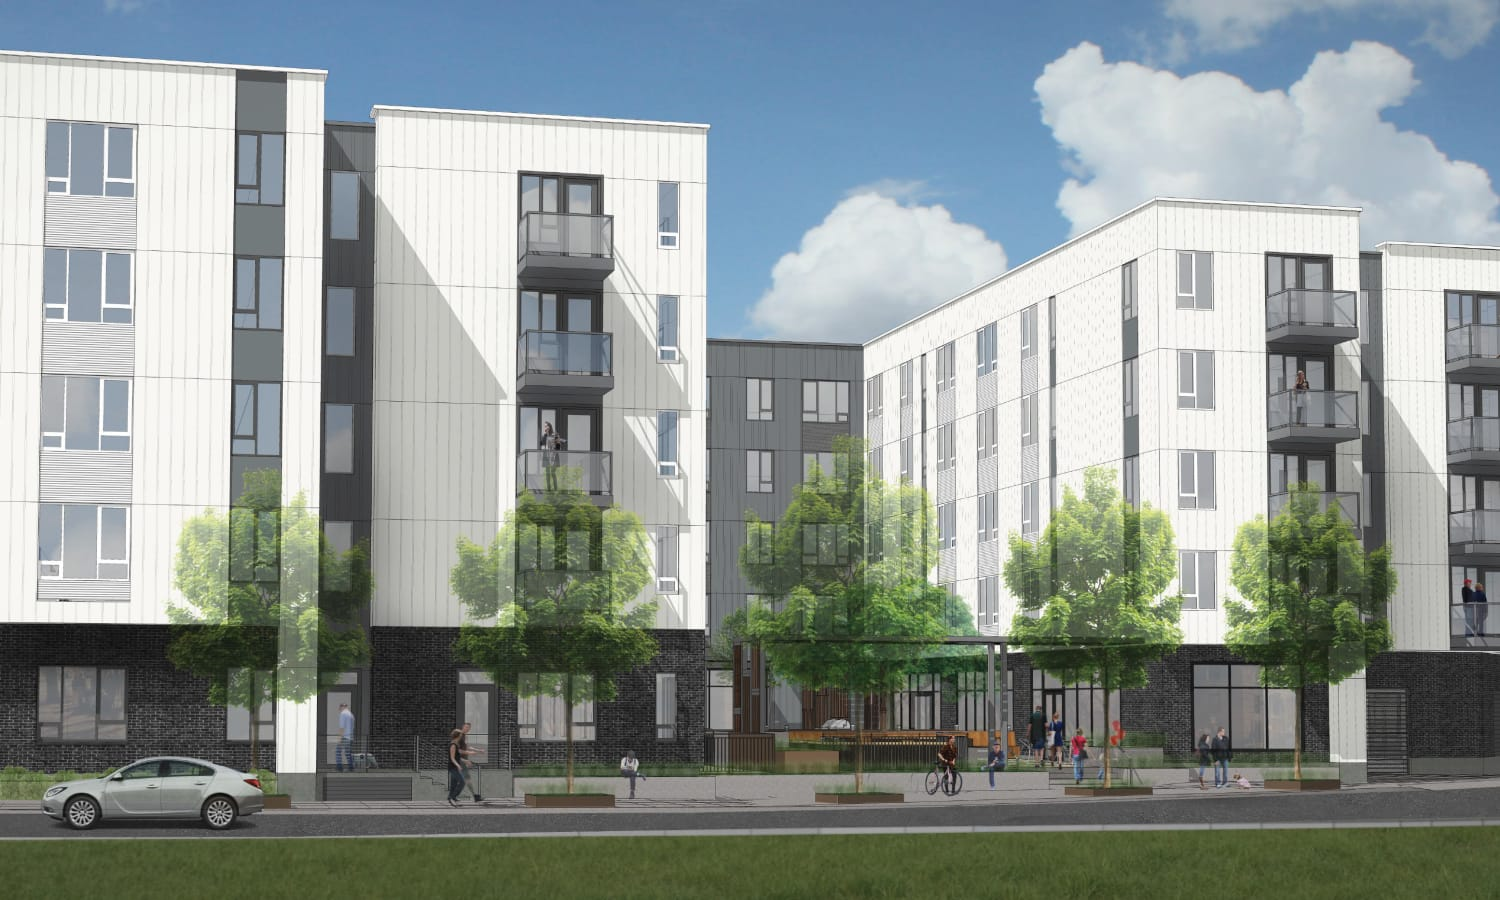 Exterior rendering of ground-level view at Grant Park Village - Quimby from the south facing courtyard in Portland, OR